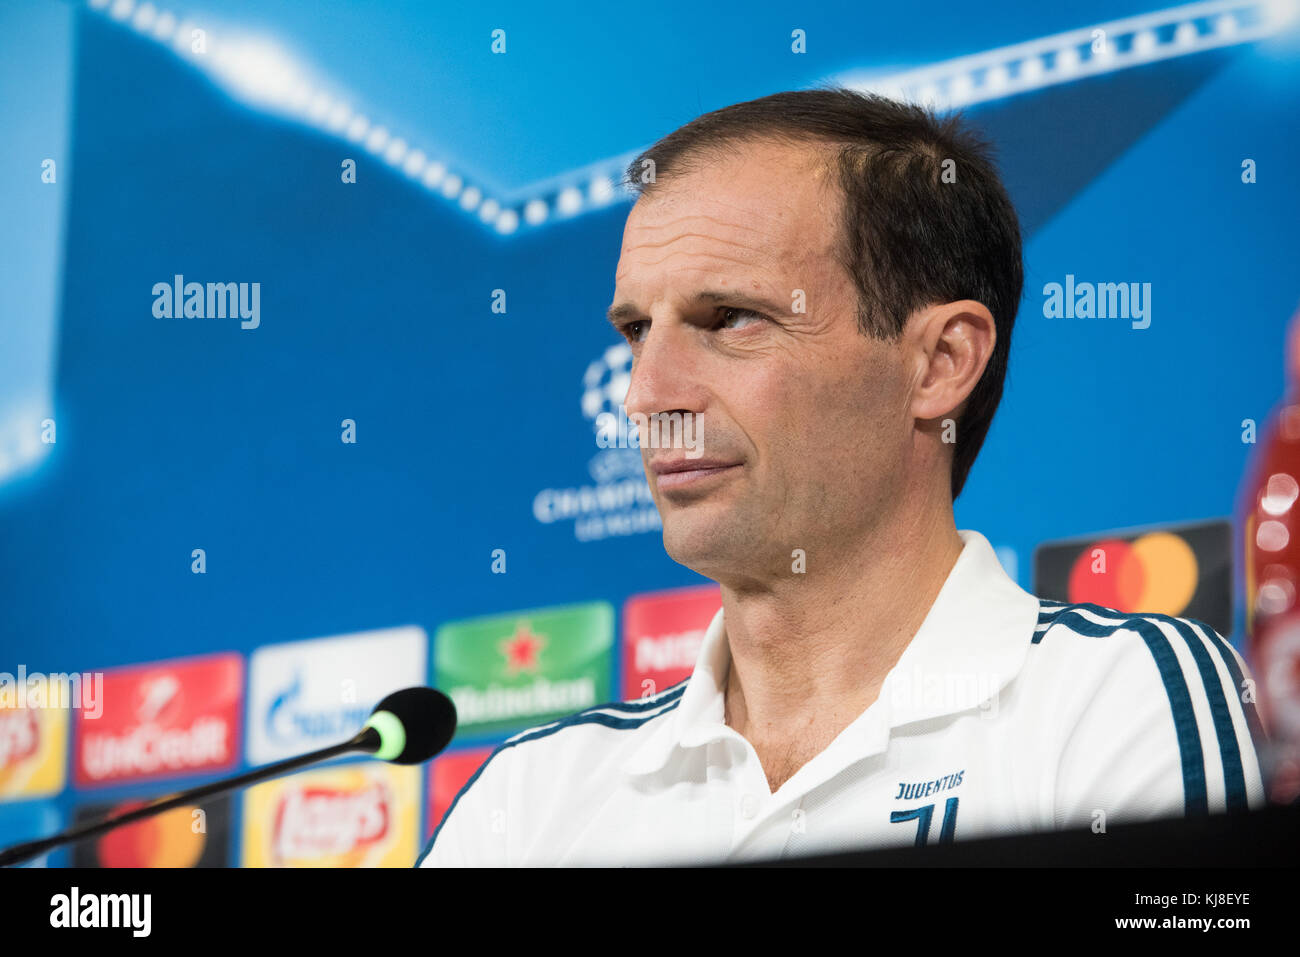 Turin, Italy. 21st Nov, 2017. Massimiliano Allegri during the Juventus FC press conference before the Champions - Stock Image